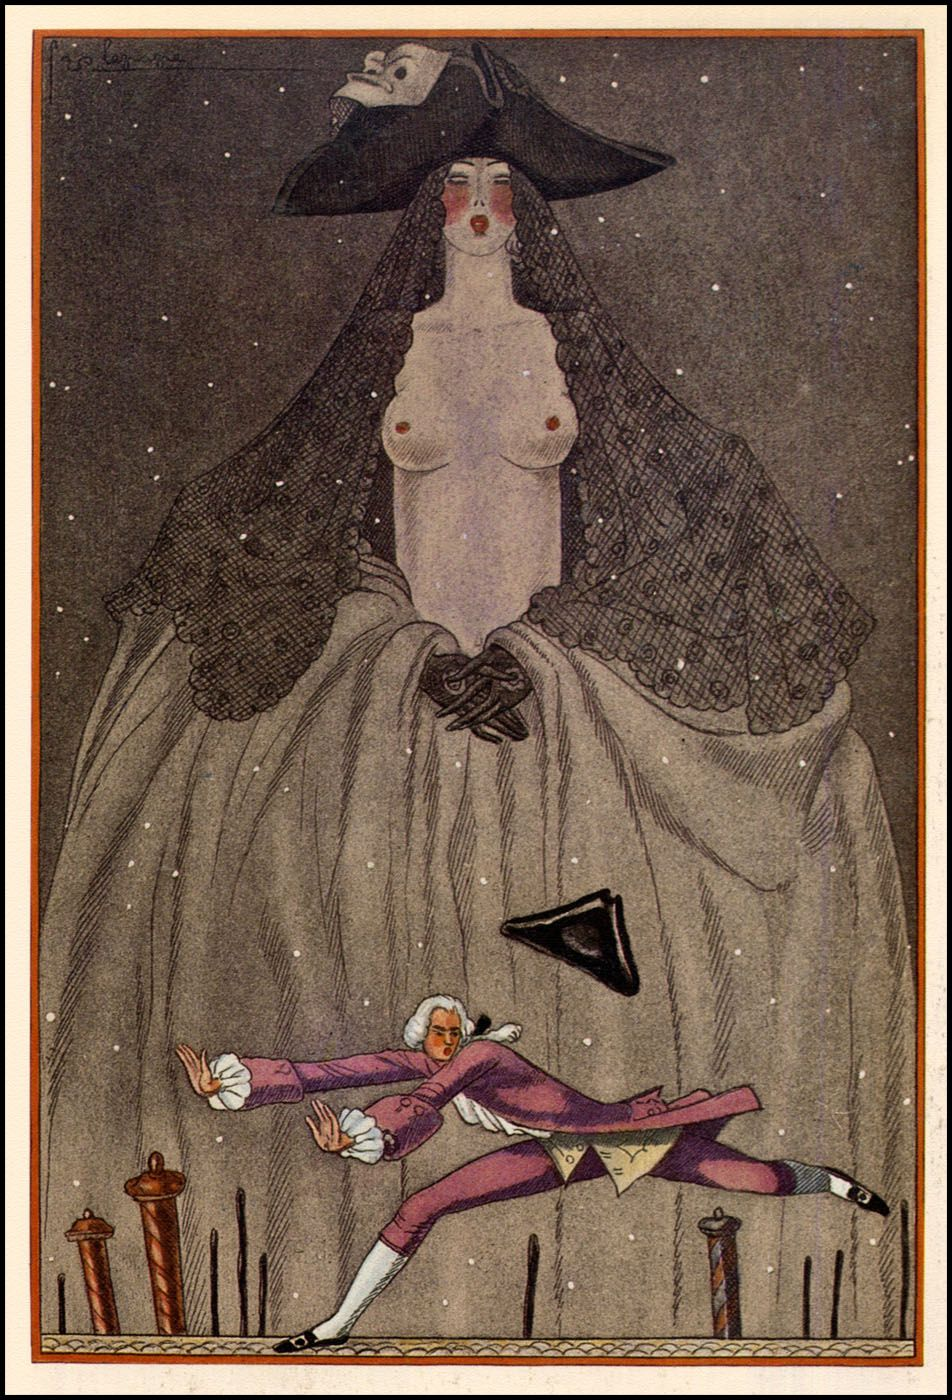 Georges Lepape — 1929,  for 'L'Initiation Vénitienne' by Henri de Régnier, published by the Société des amis du livre